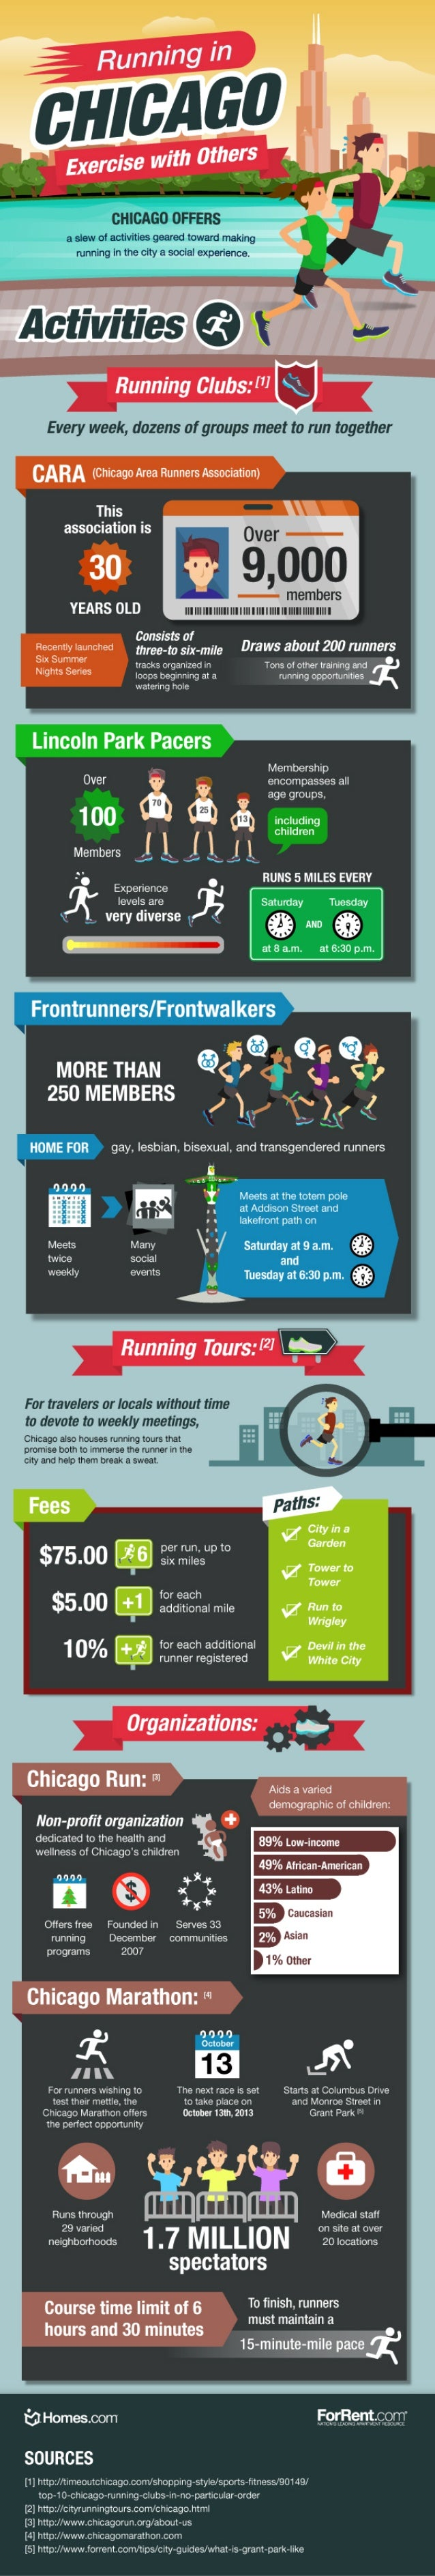 Running in Chicago - Exercising With Others